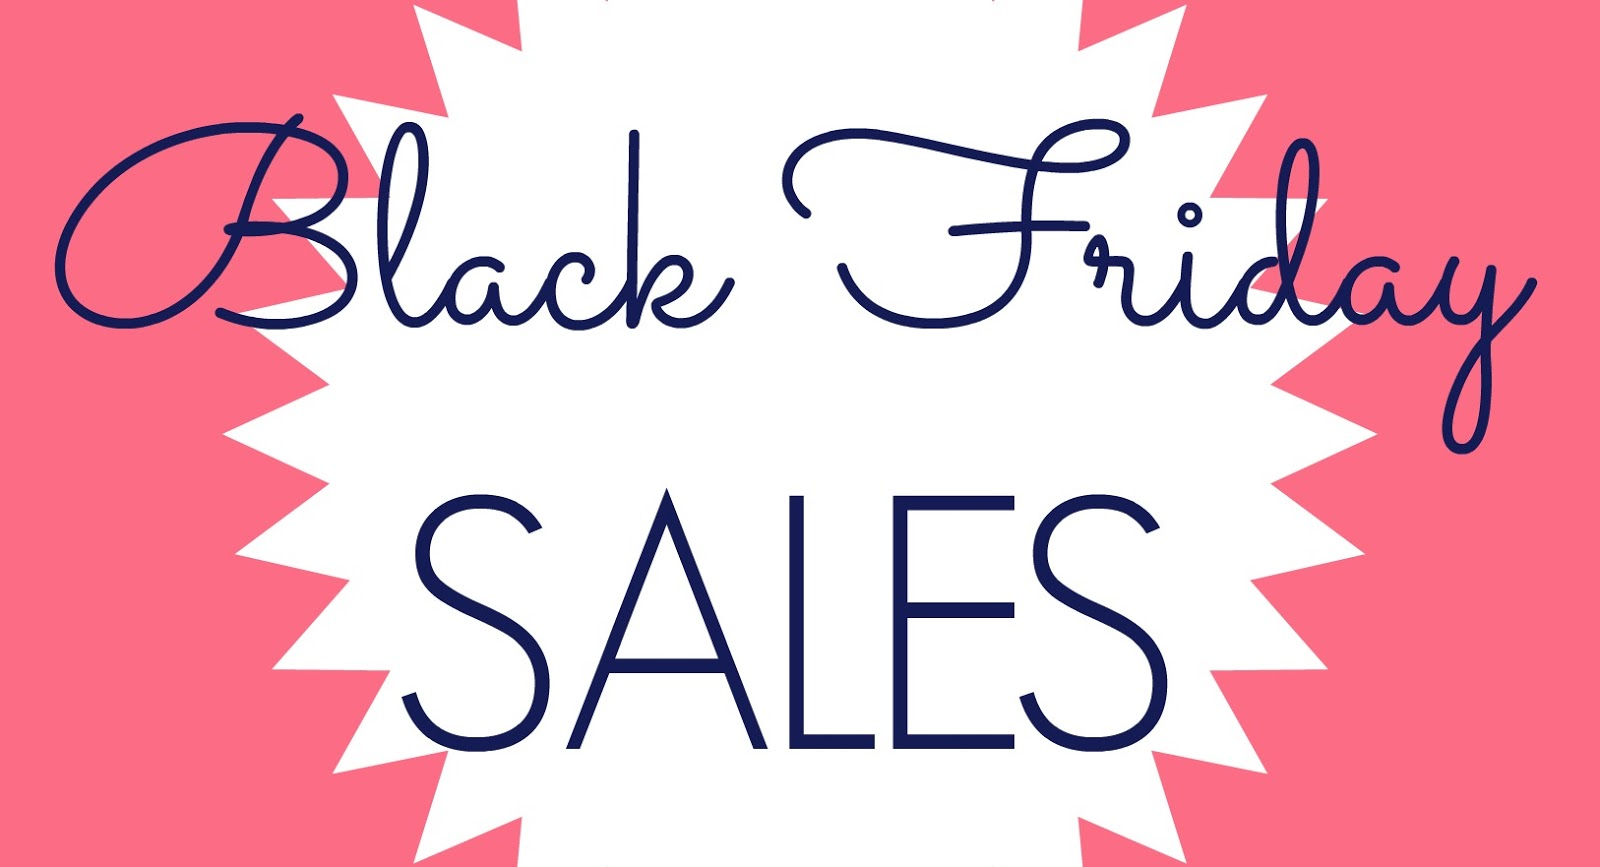 black friday sales - cyber monday sales - online christmas sales - christmas shopping sales